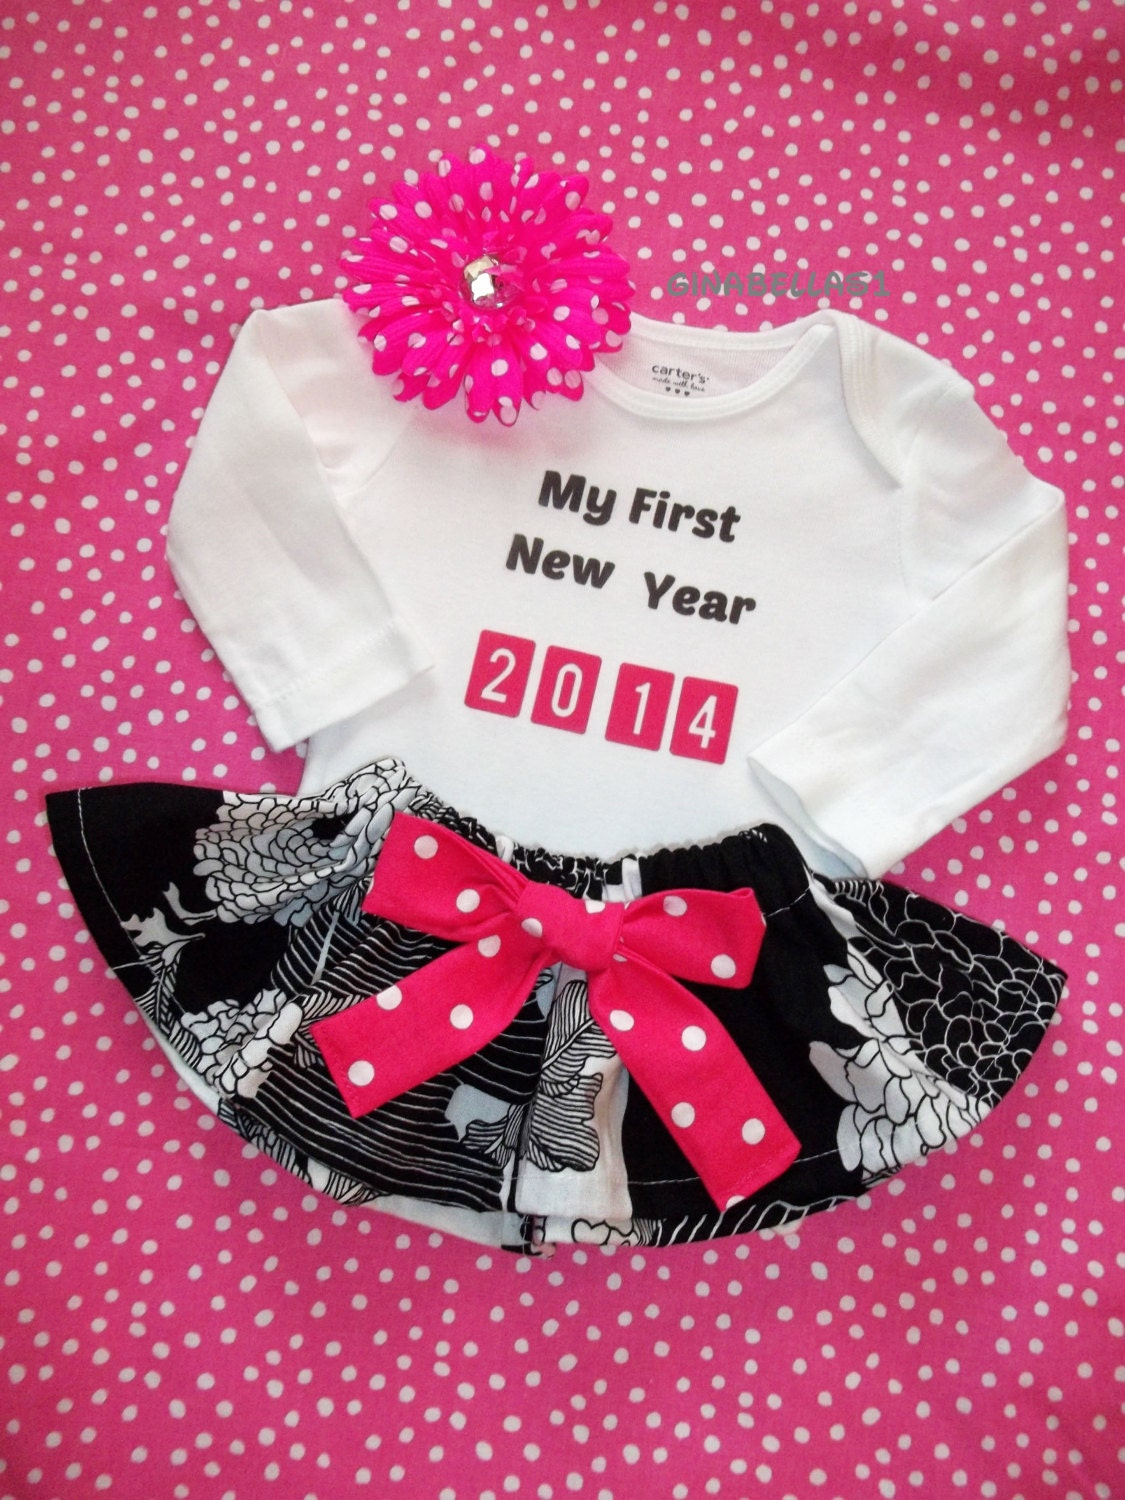 Onesie baby girl boy 2014 body suit 1st christmas pink black dress